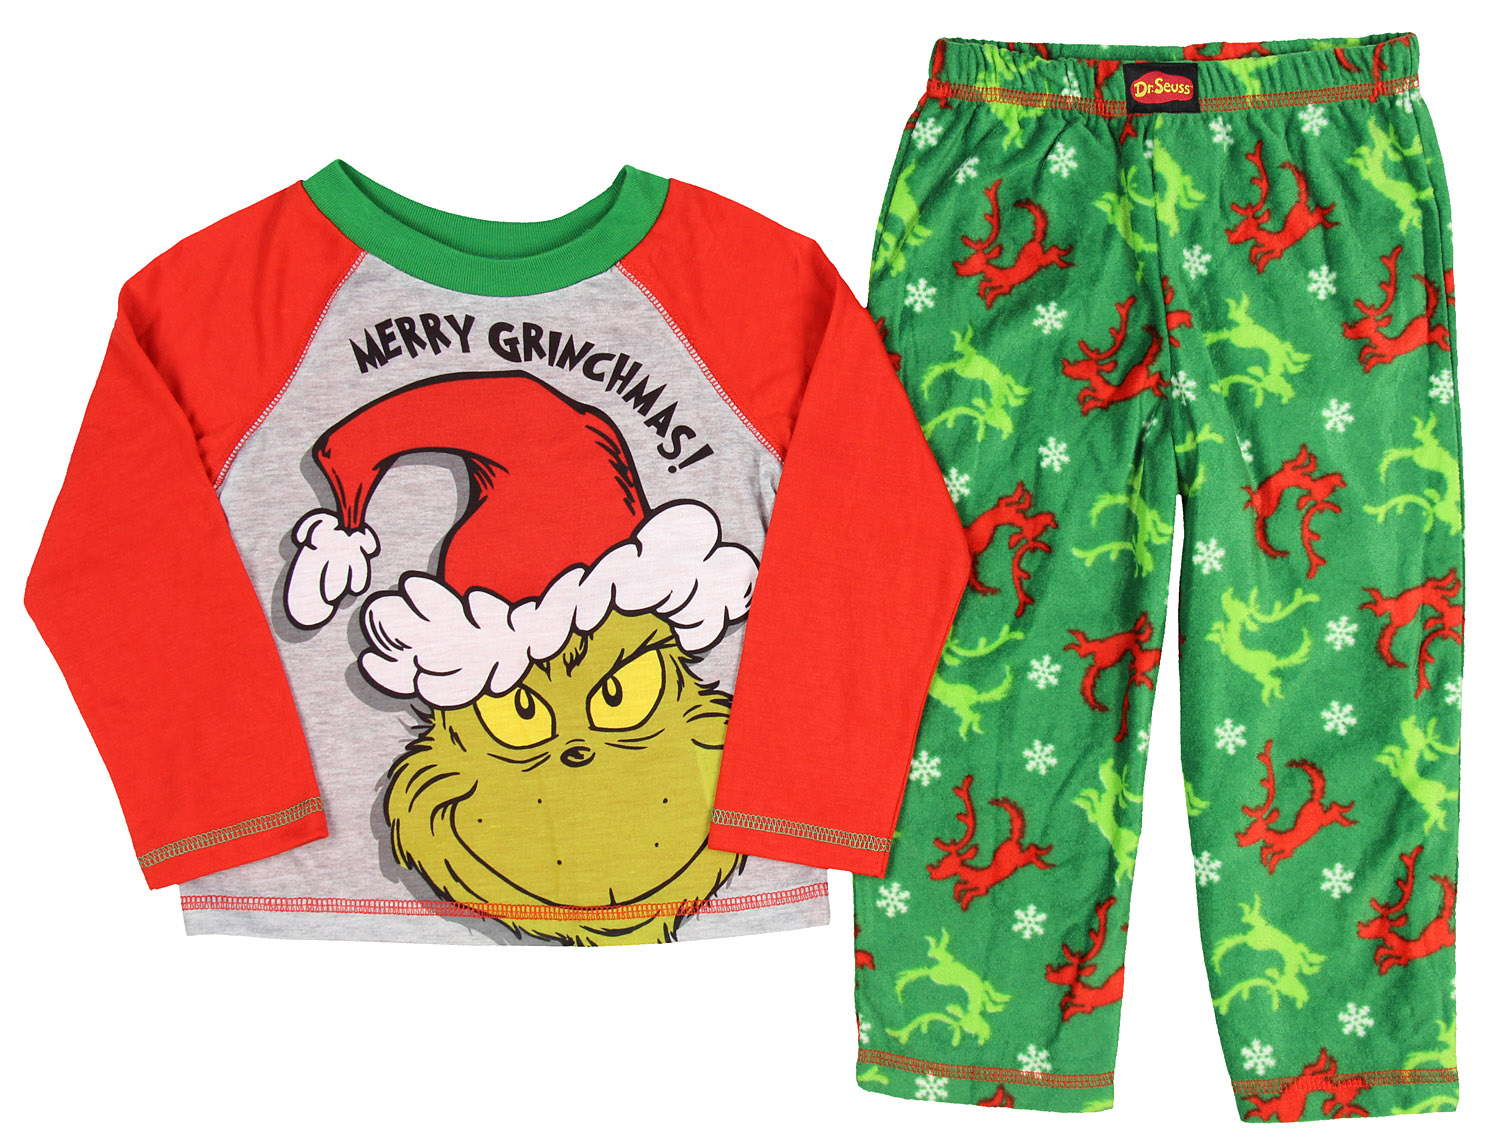 The Grinch Merry Grinchmas Christmas Holiday Boys/' Toddler Pajama Set